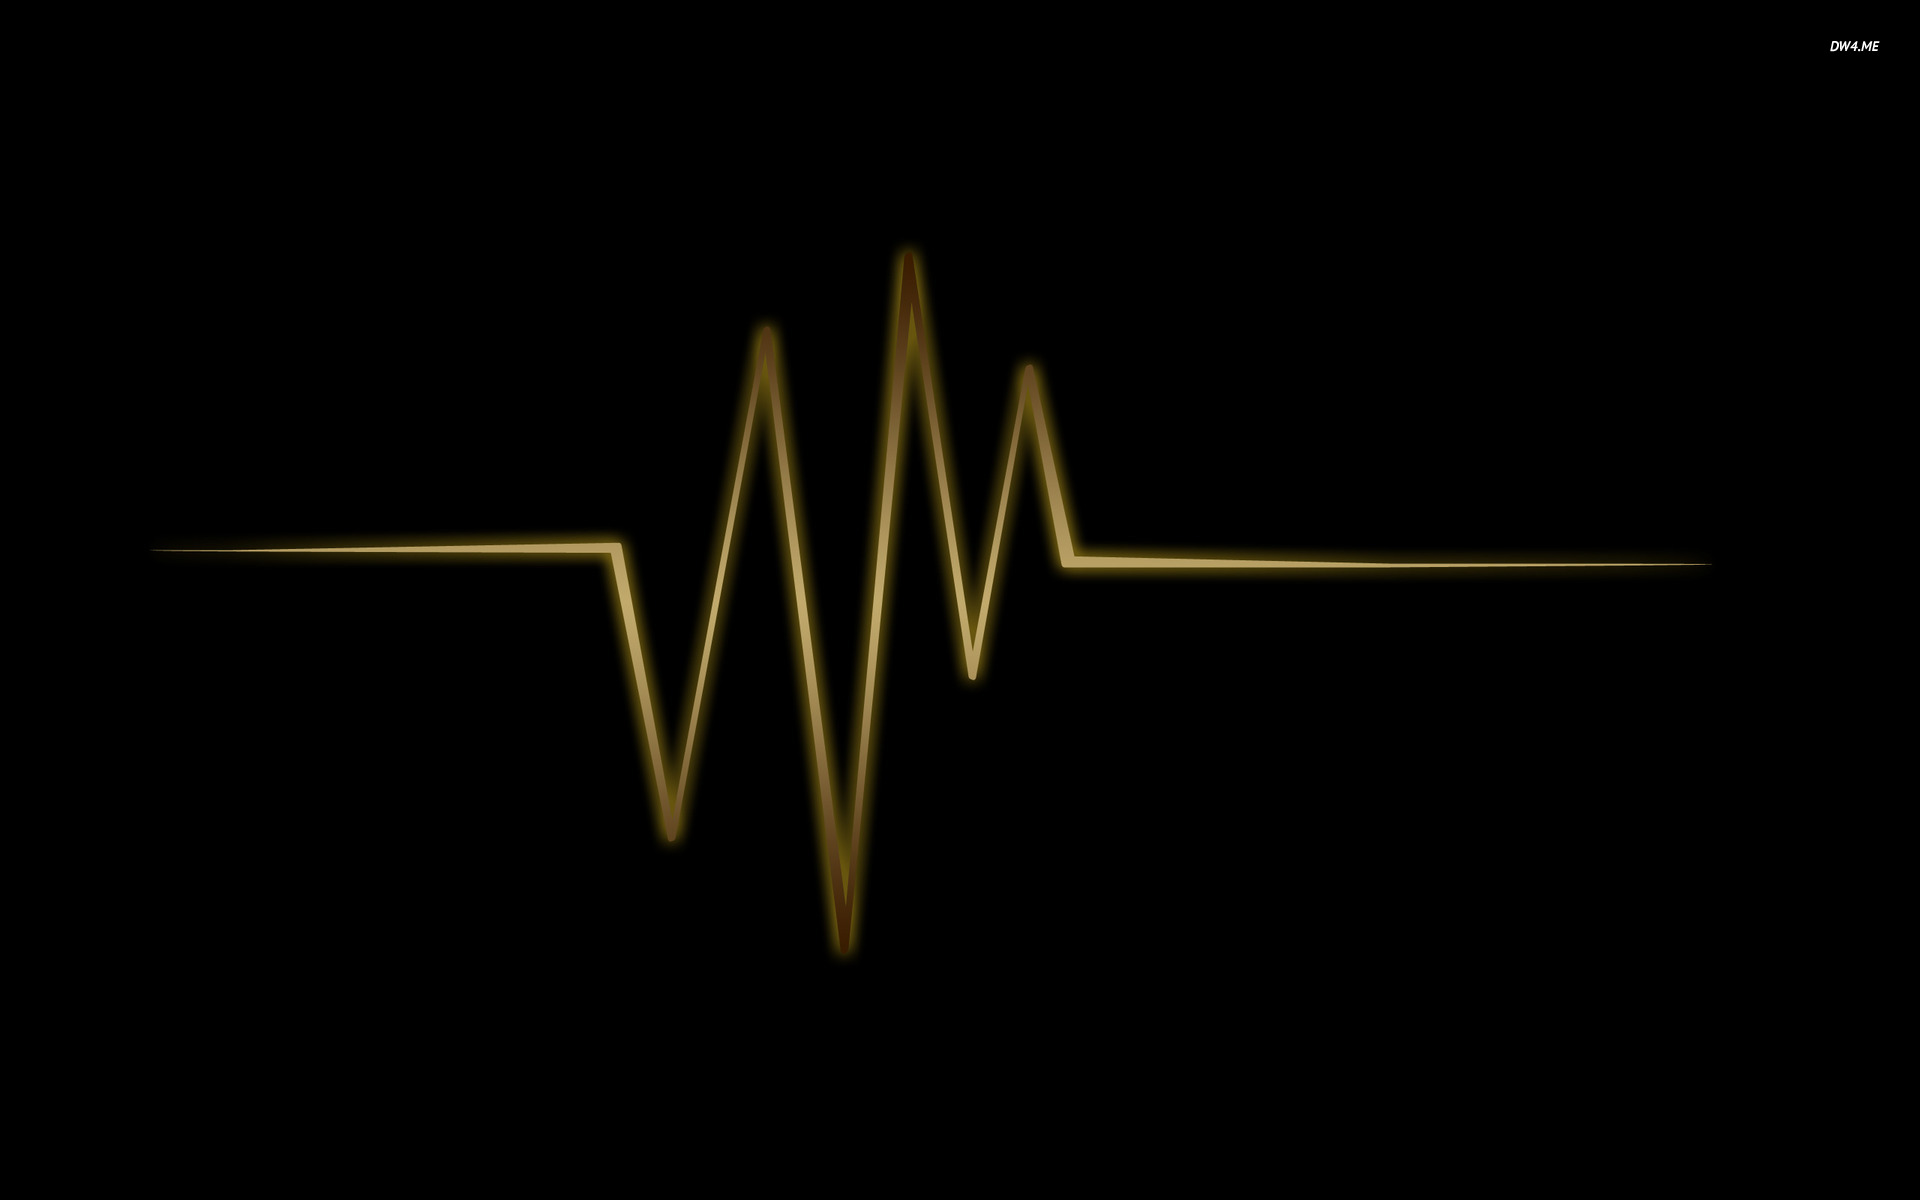 Heartbeat wallpaperAbstract wallpapers#506 1800